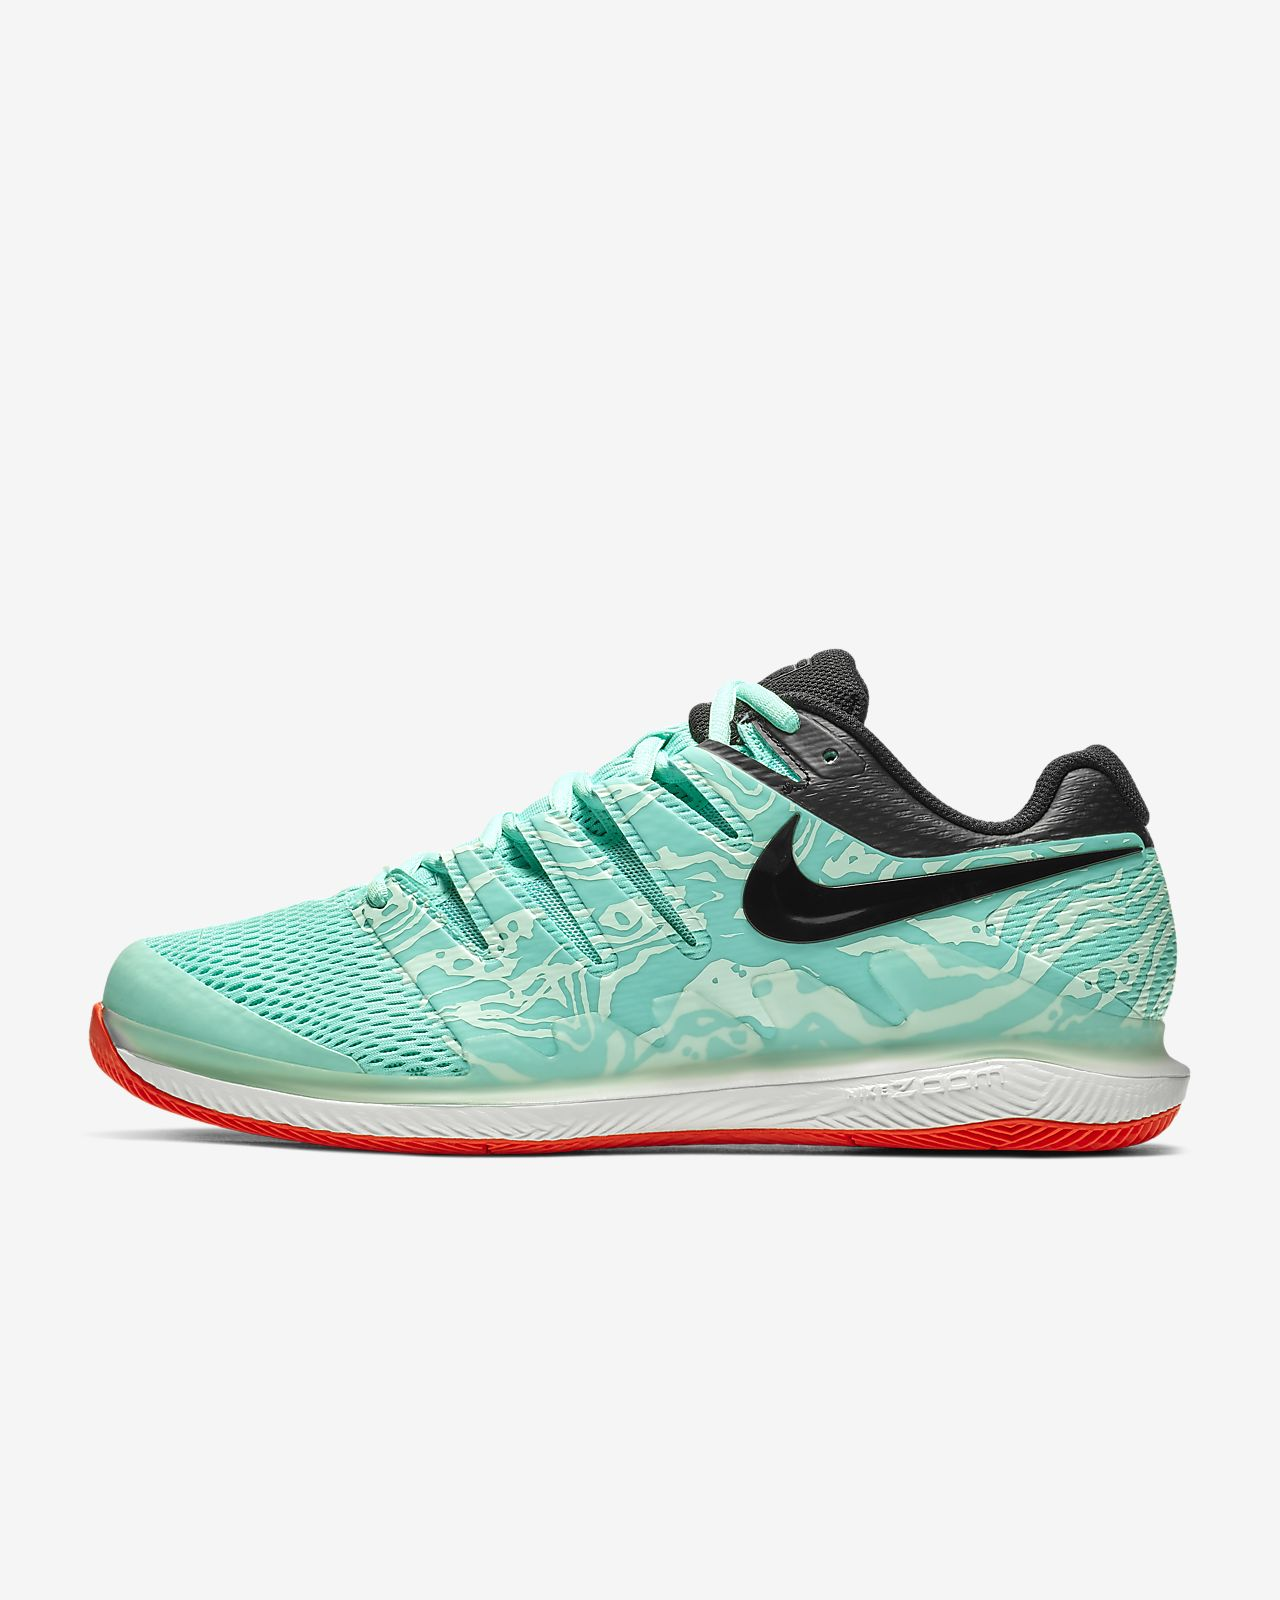 f6b0a95a79ab1 NikeCourt Air Zoom Vapor X Men's Hard Court Tennis Shoe